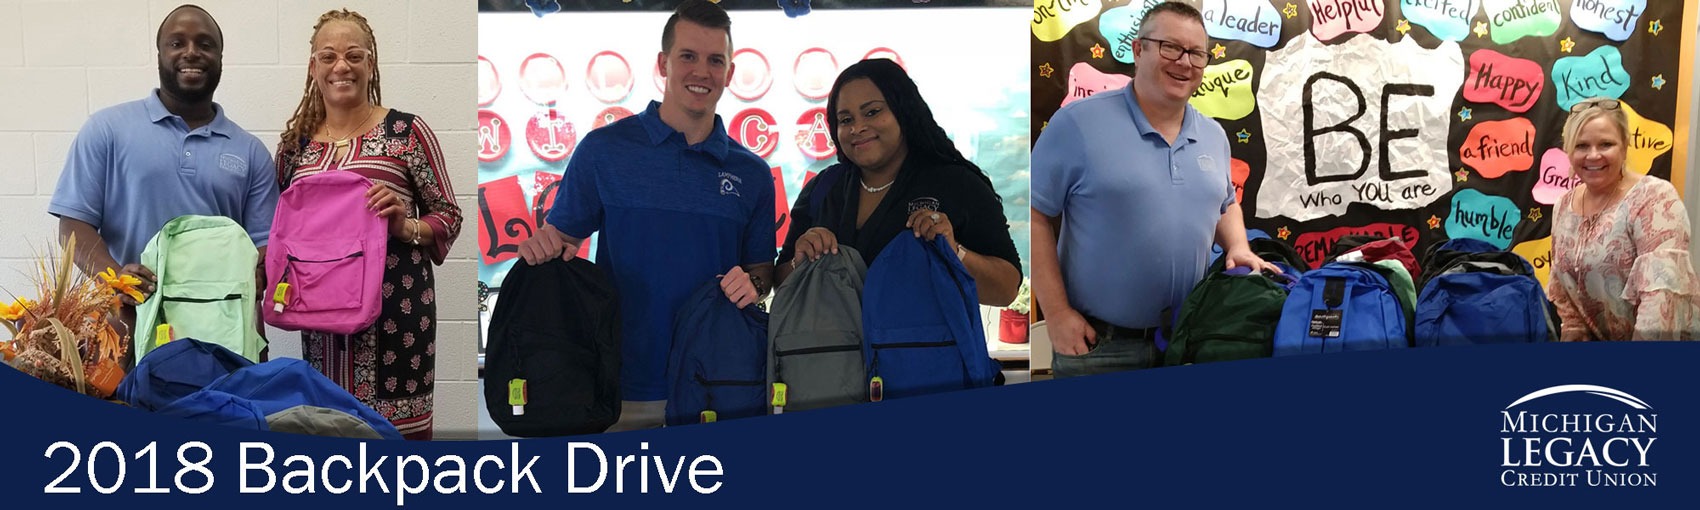 2018 Backpack drive